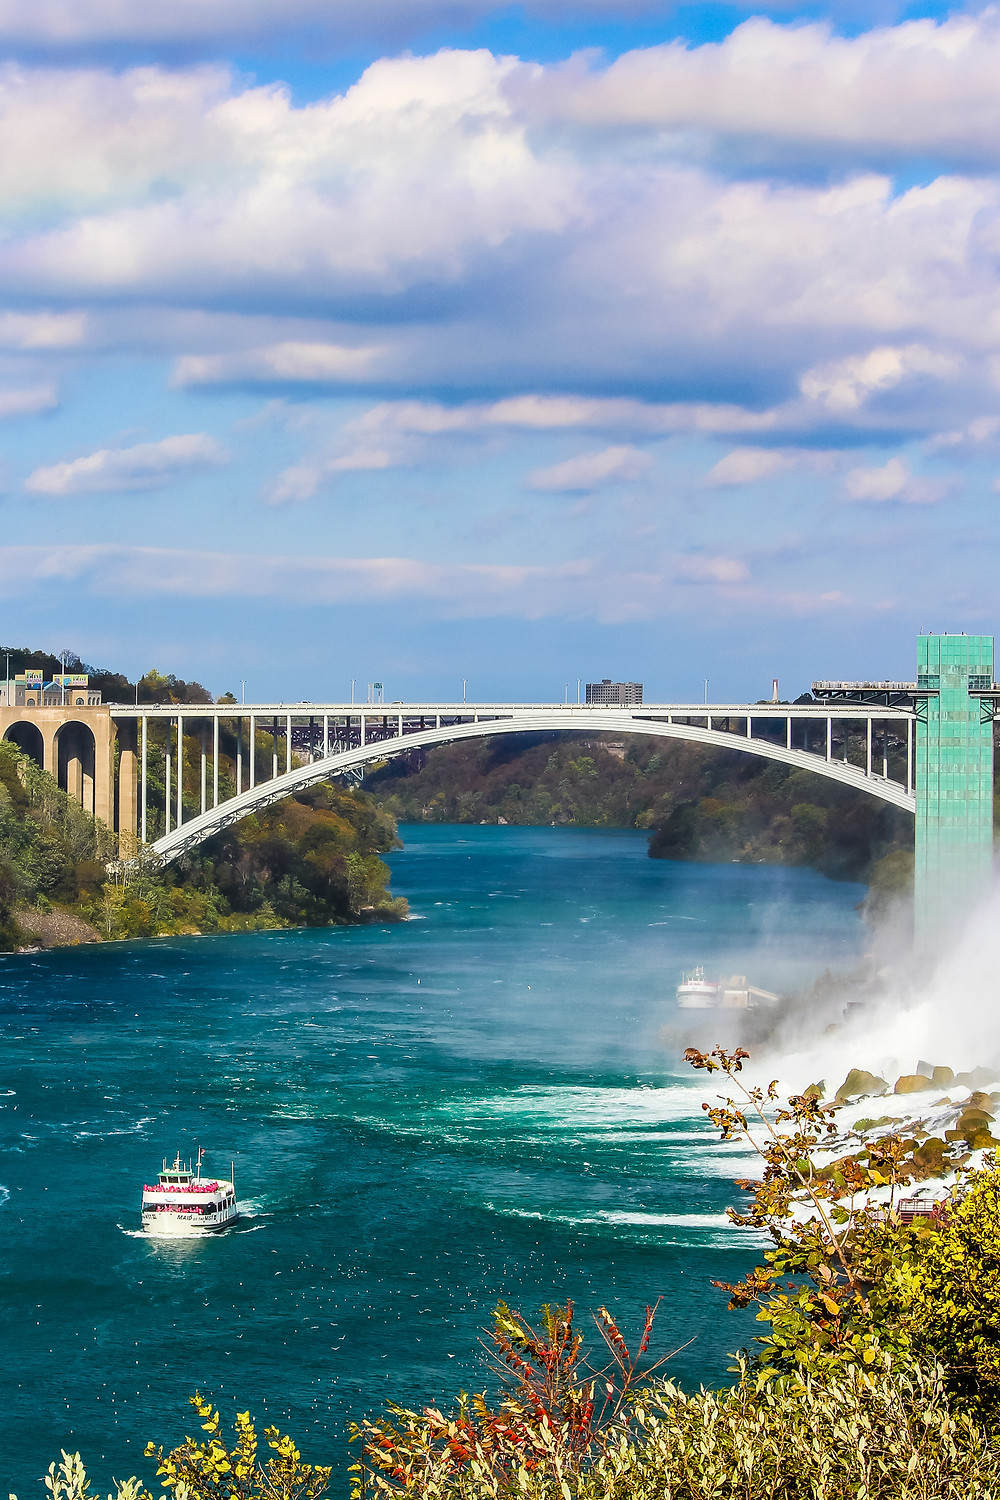 Rainbow bridge, USA Canada border, USA Canada foot bridge, international border crossing, Niagara Falls bridge, Niagara Falls New York, Niagara Falls Ontario